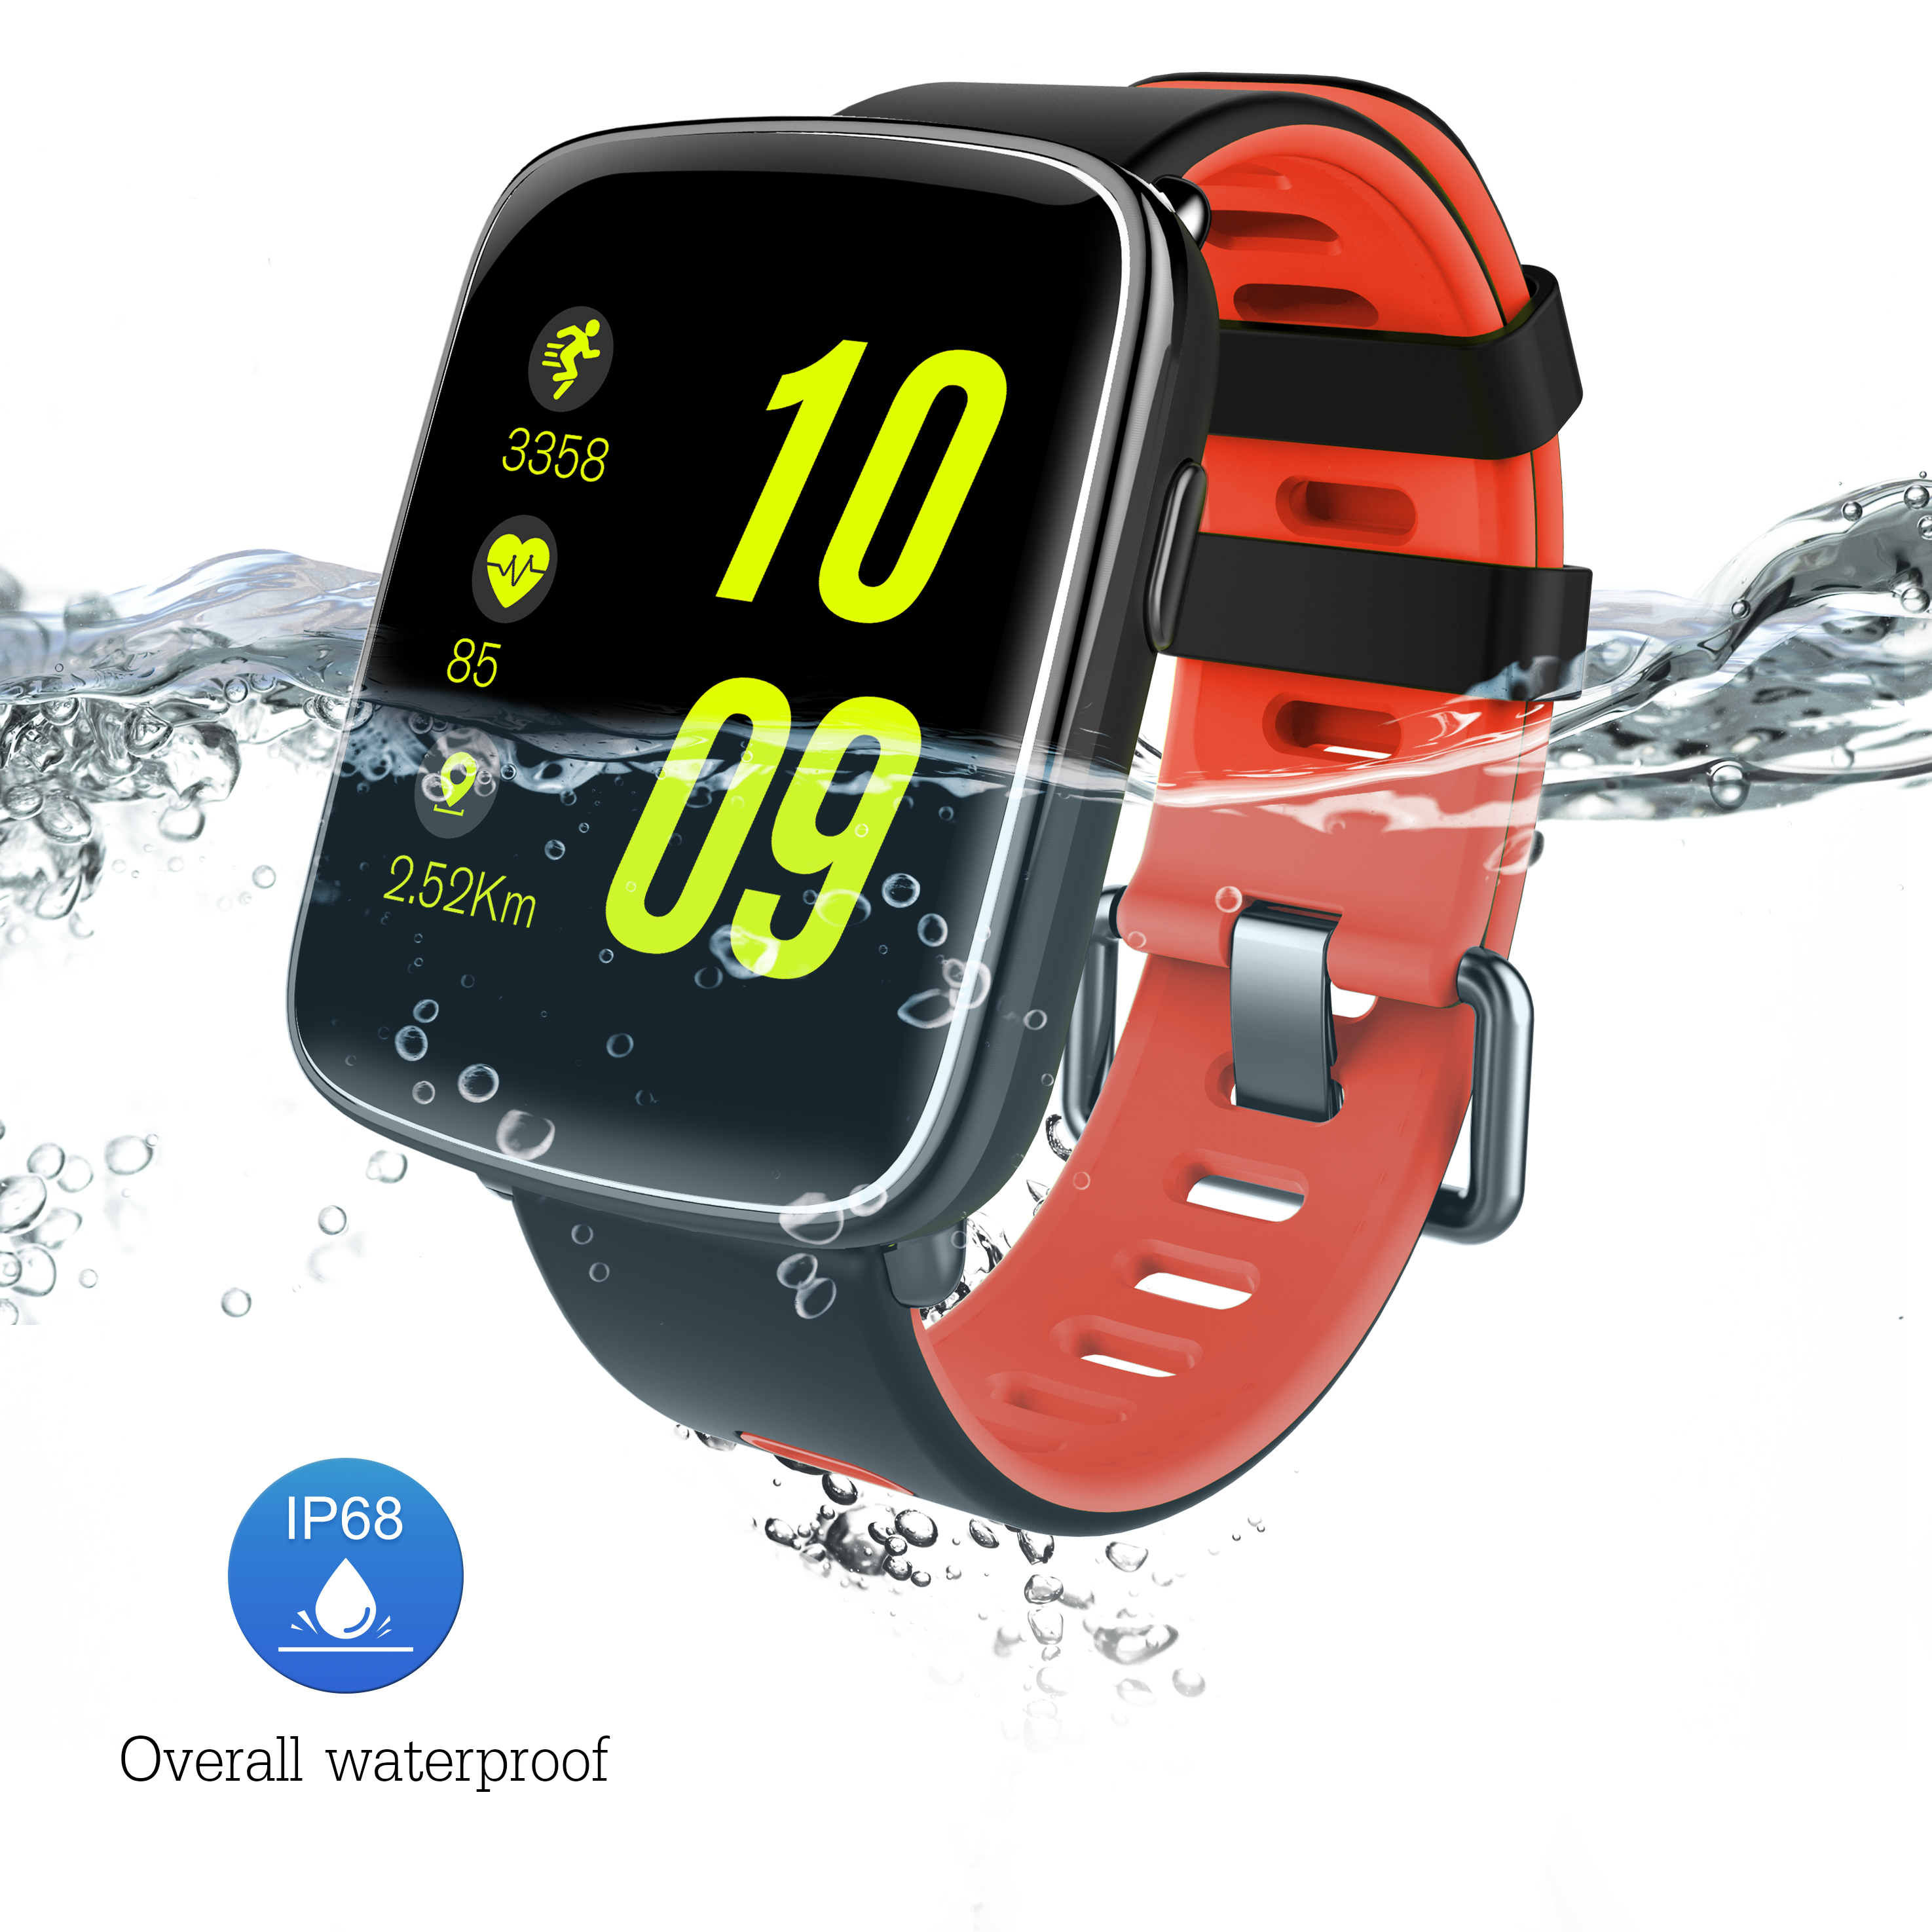 GV68 Smart Watch Bluetooth Smartwatch Men Sport Watch IP68 Waterproof Fitness Tracker Heart Rate for IOS Android Watch Phone lemdioe smart watch ip68 waterproof for men heart rate monitor multi sport mode bluetooth call smartwatch for android ios phone